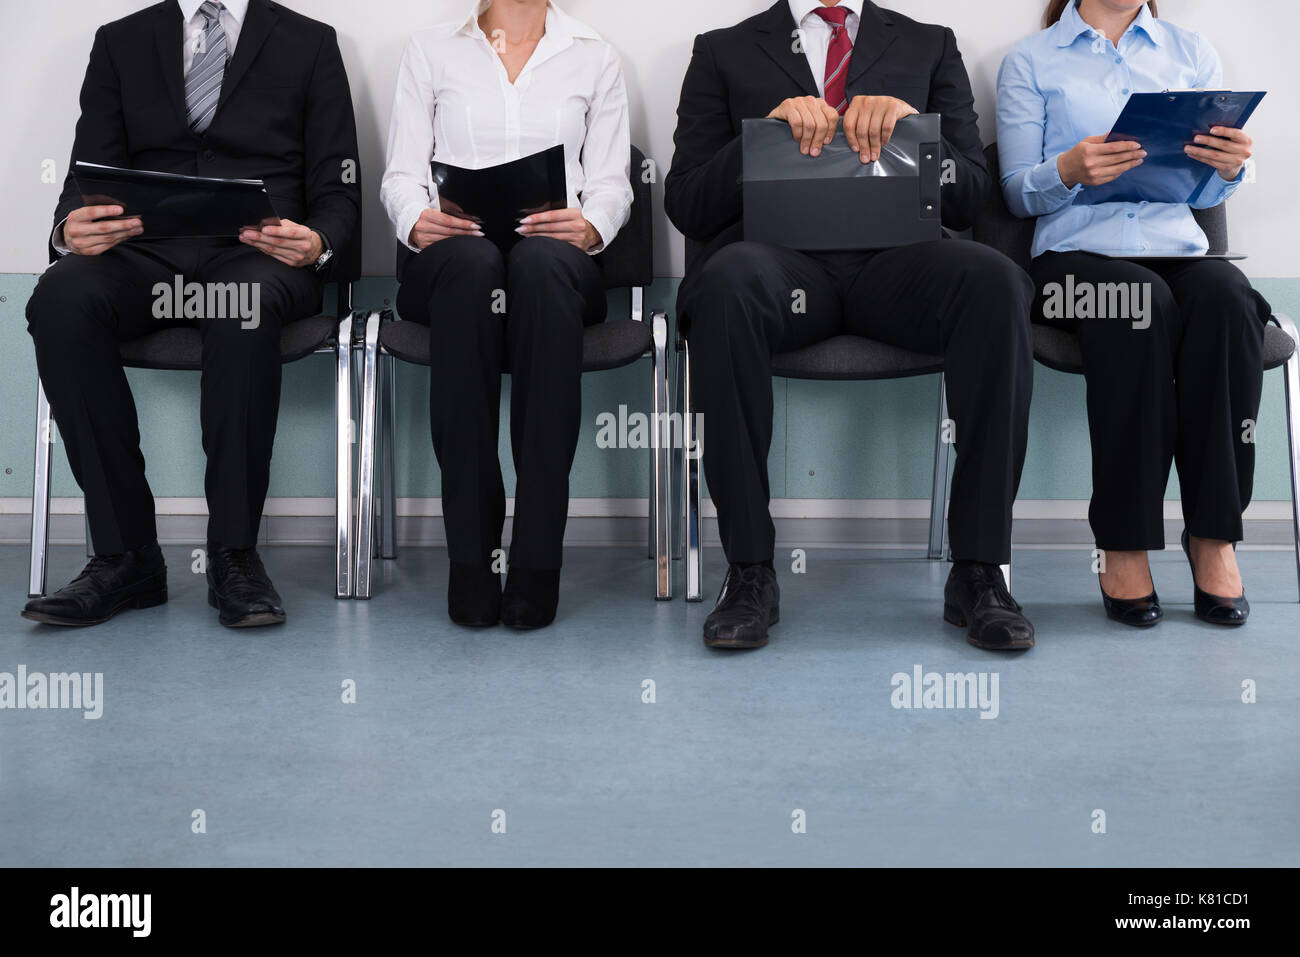 Close-up Of Businesspeople With Files Sitting On Chair - Stock Image